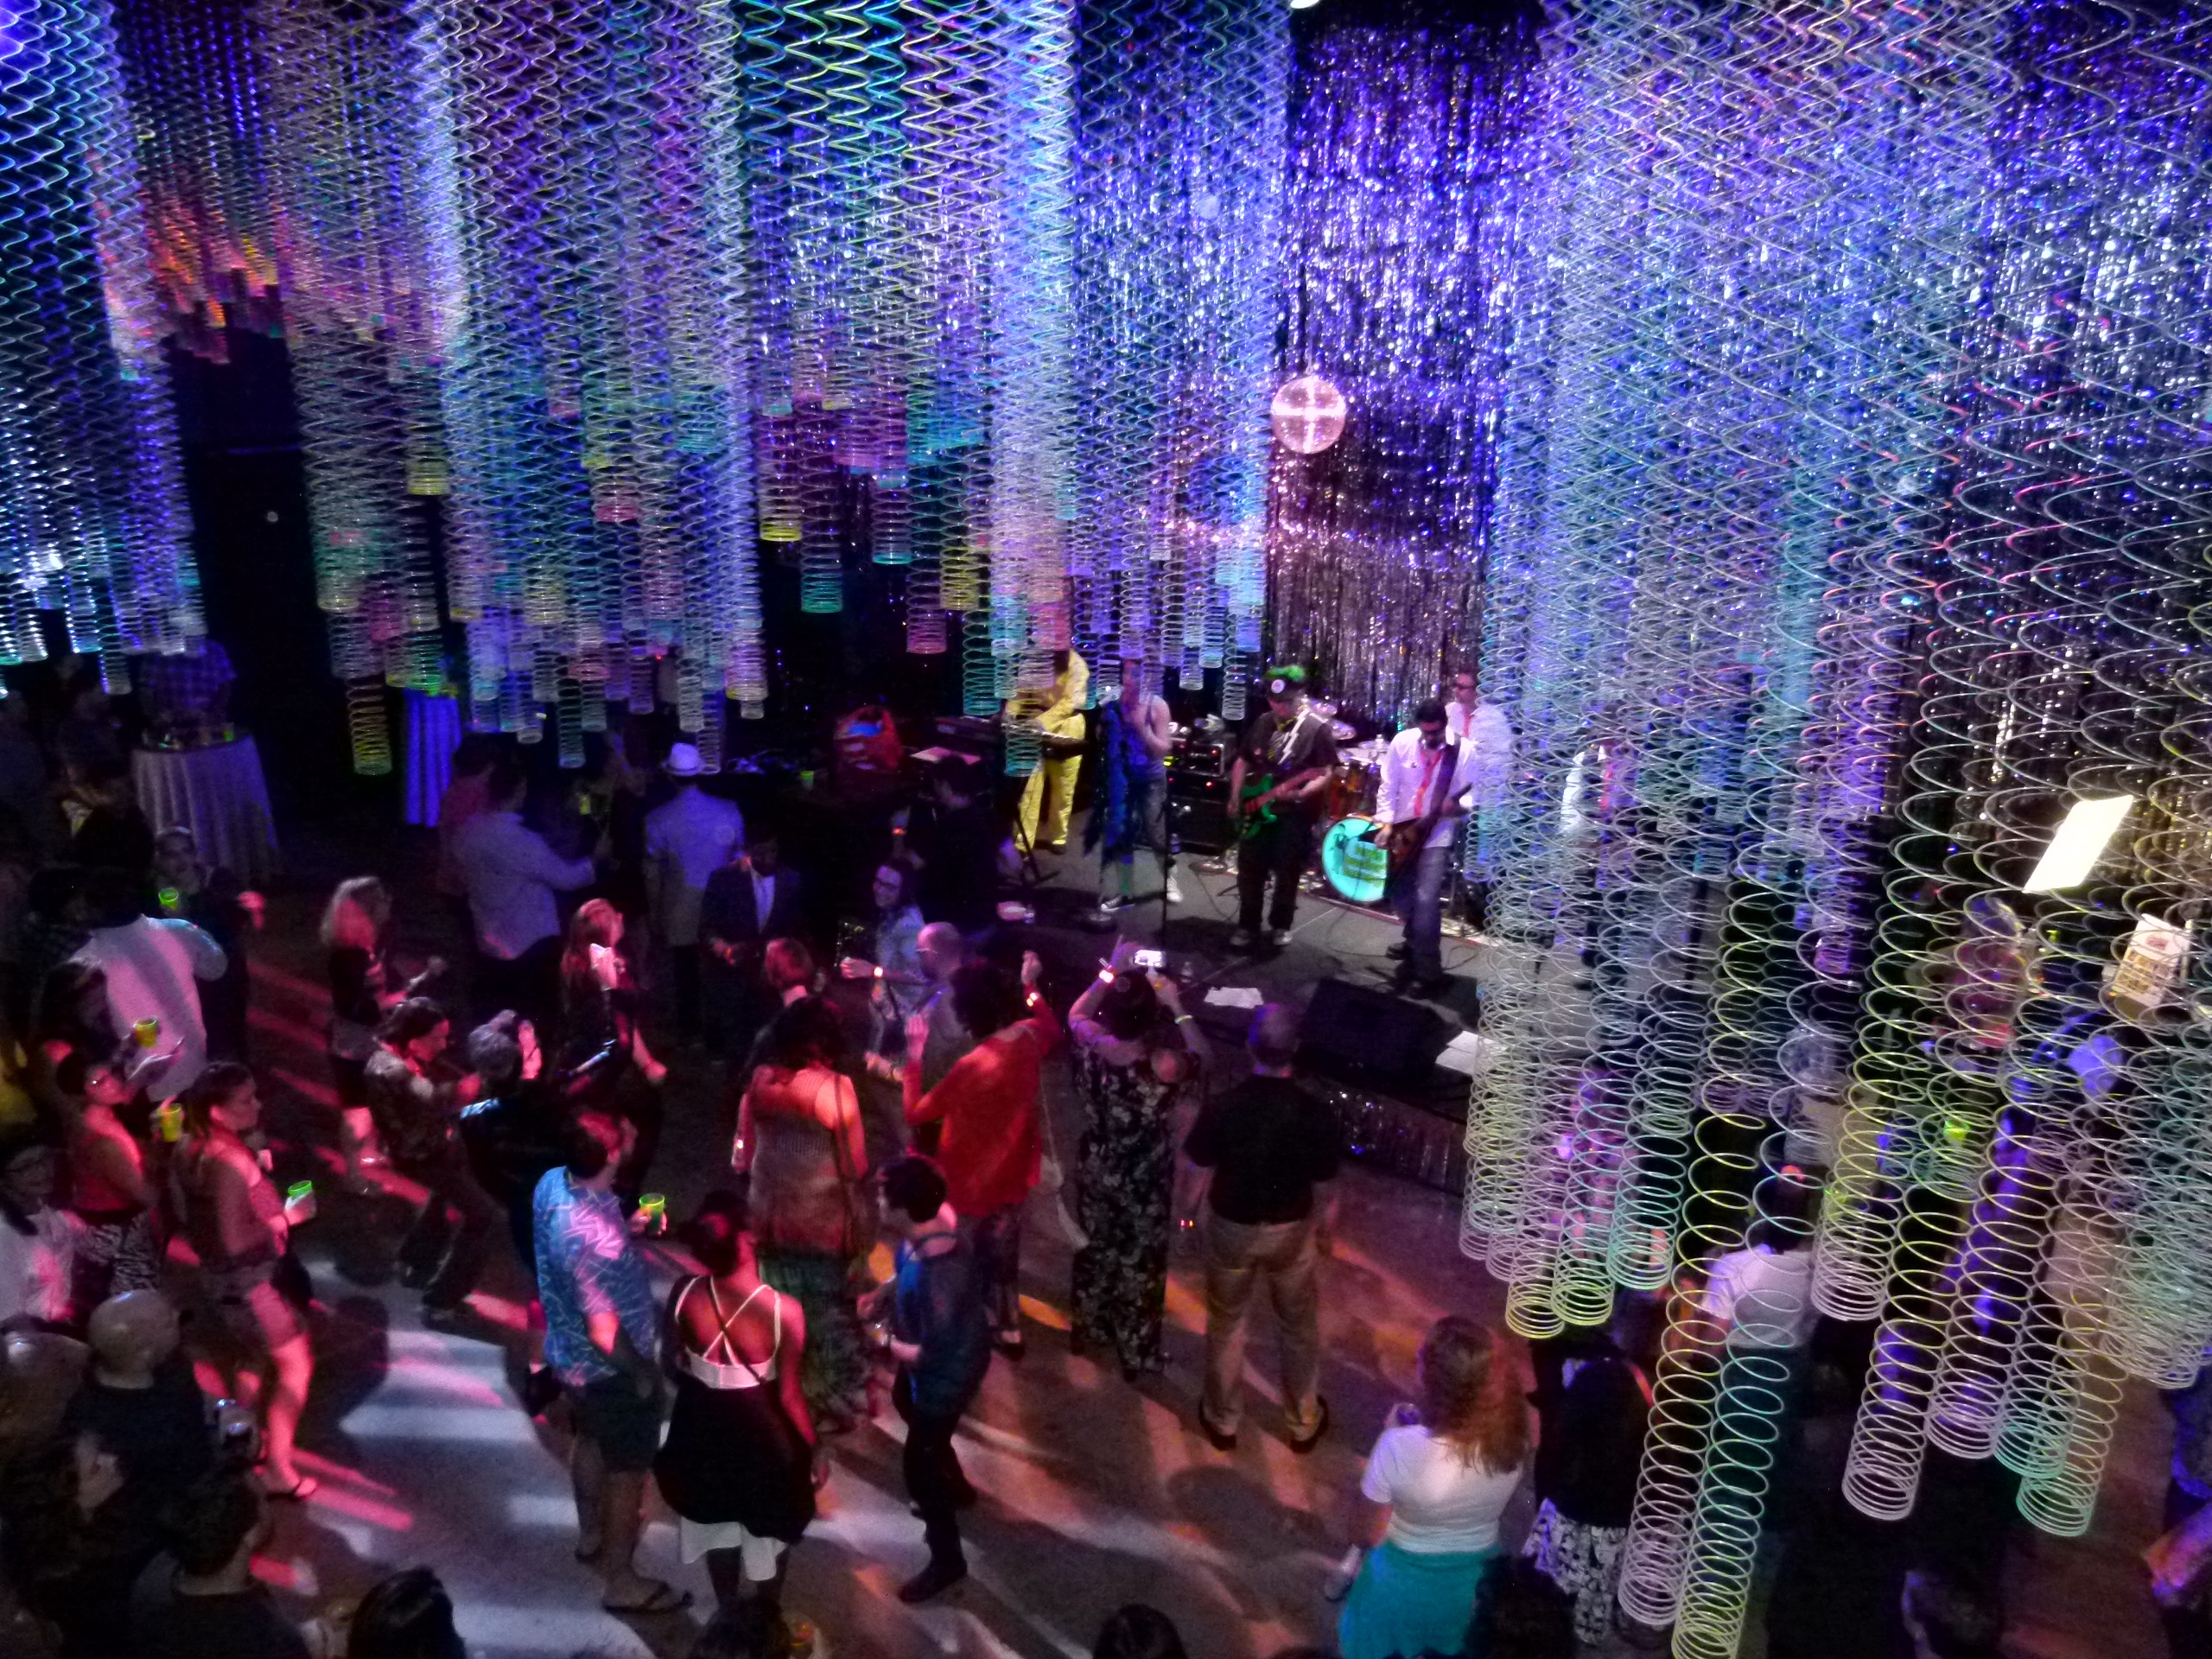 Ferris Bueller's Revenge! played the 80's room, which was creatively decorated with multi-colored Slinkys, as people danced.